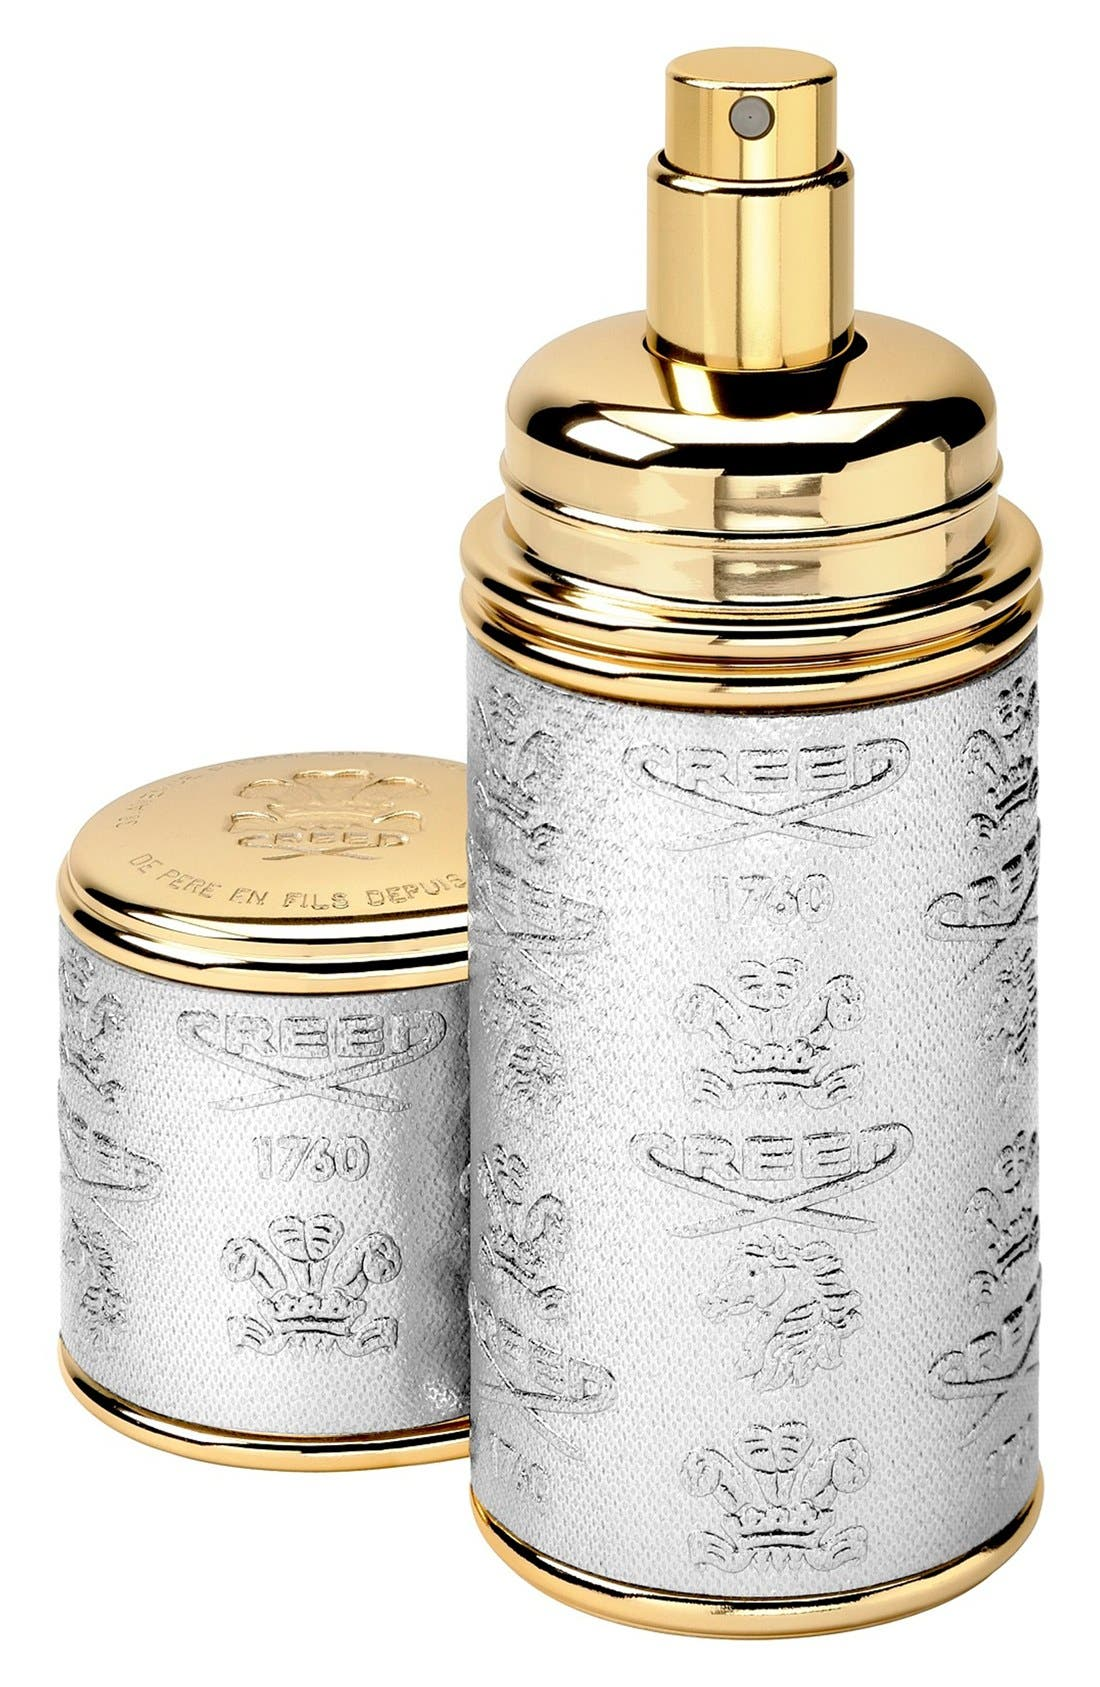 Silver with Gold Trim Leather Atomizer,                             Main thumbnail 1, color,                             000